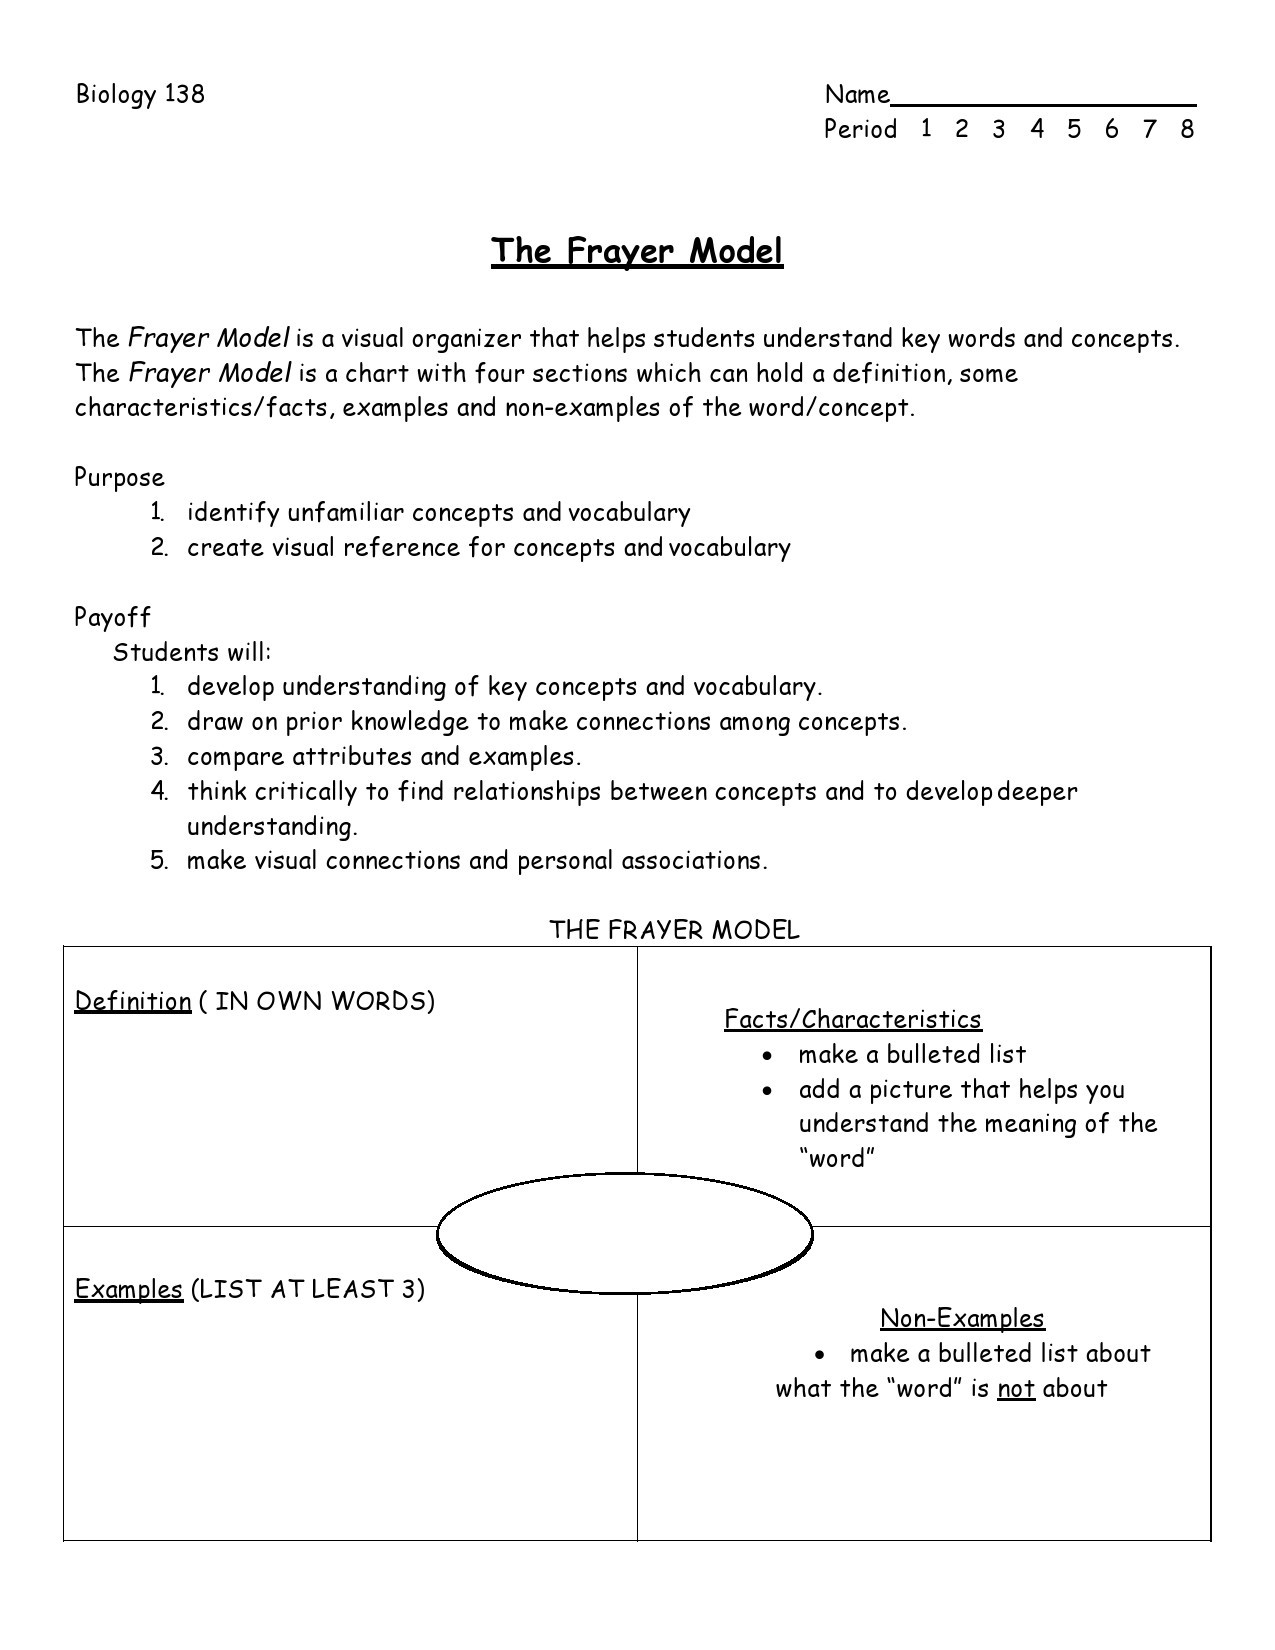 Free frayer model template 22